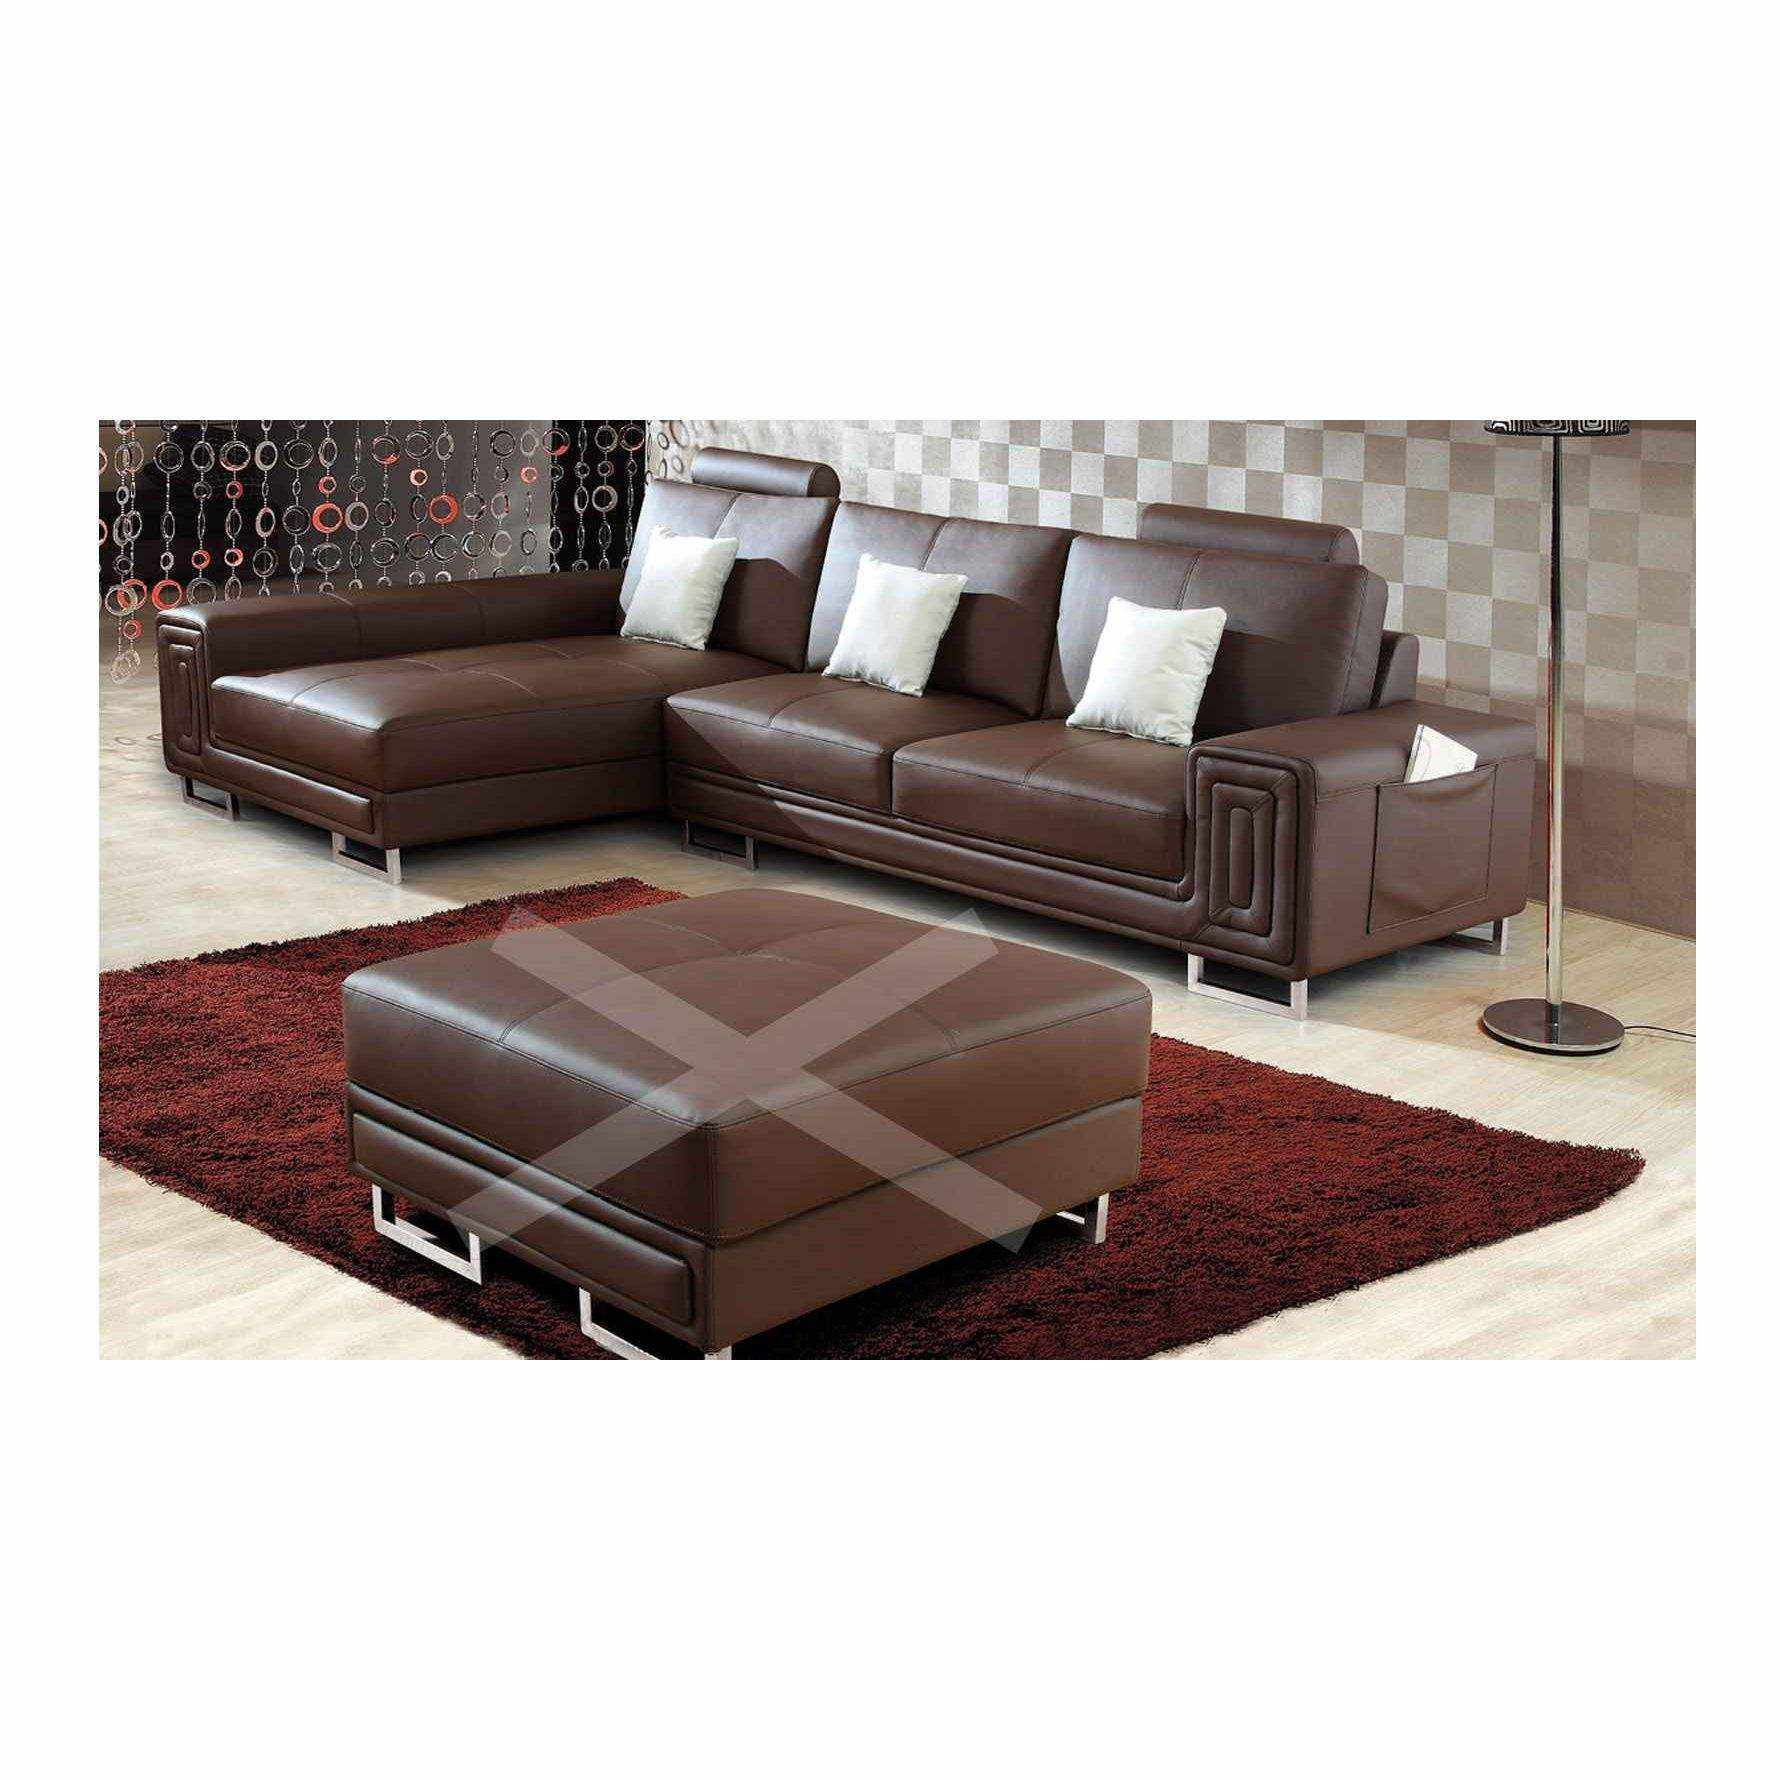 Deco in paris canape cuir d angle marron tetieres relax for Autour d un canape